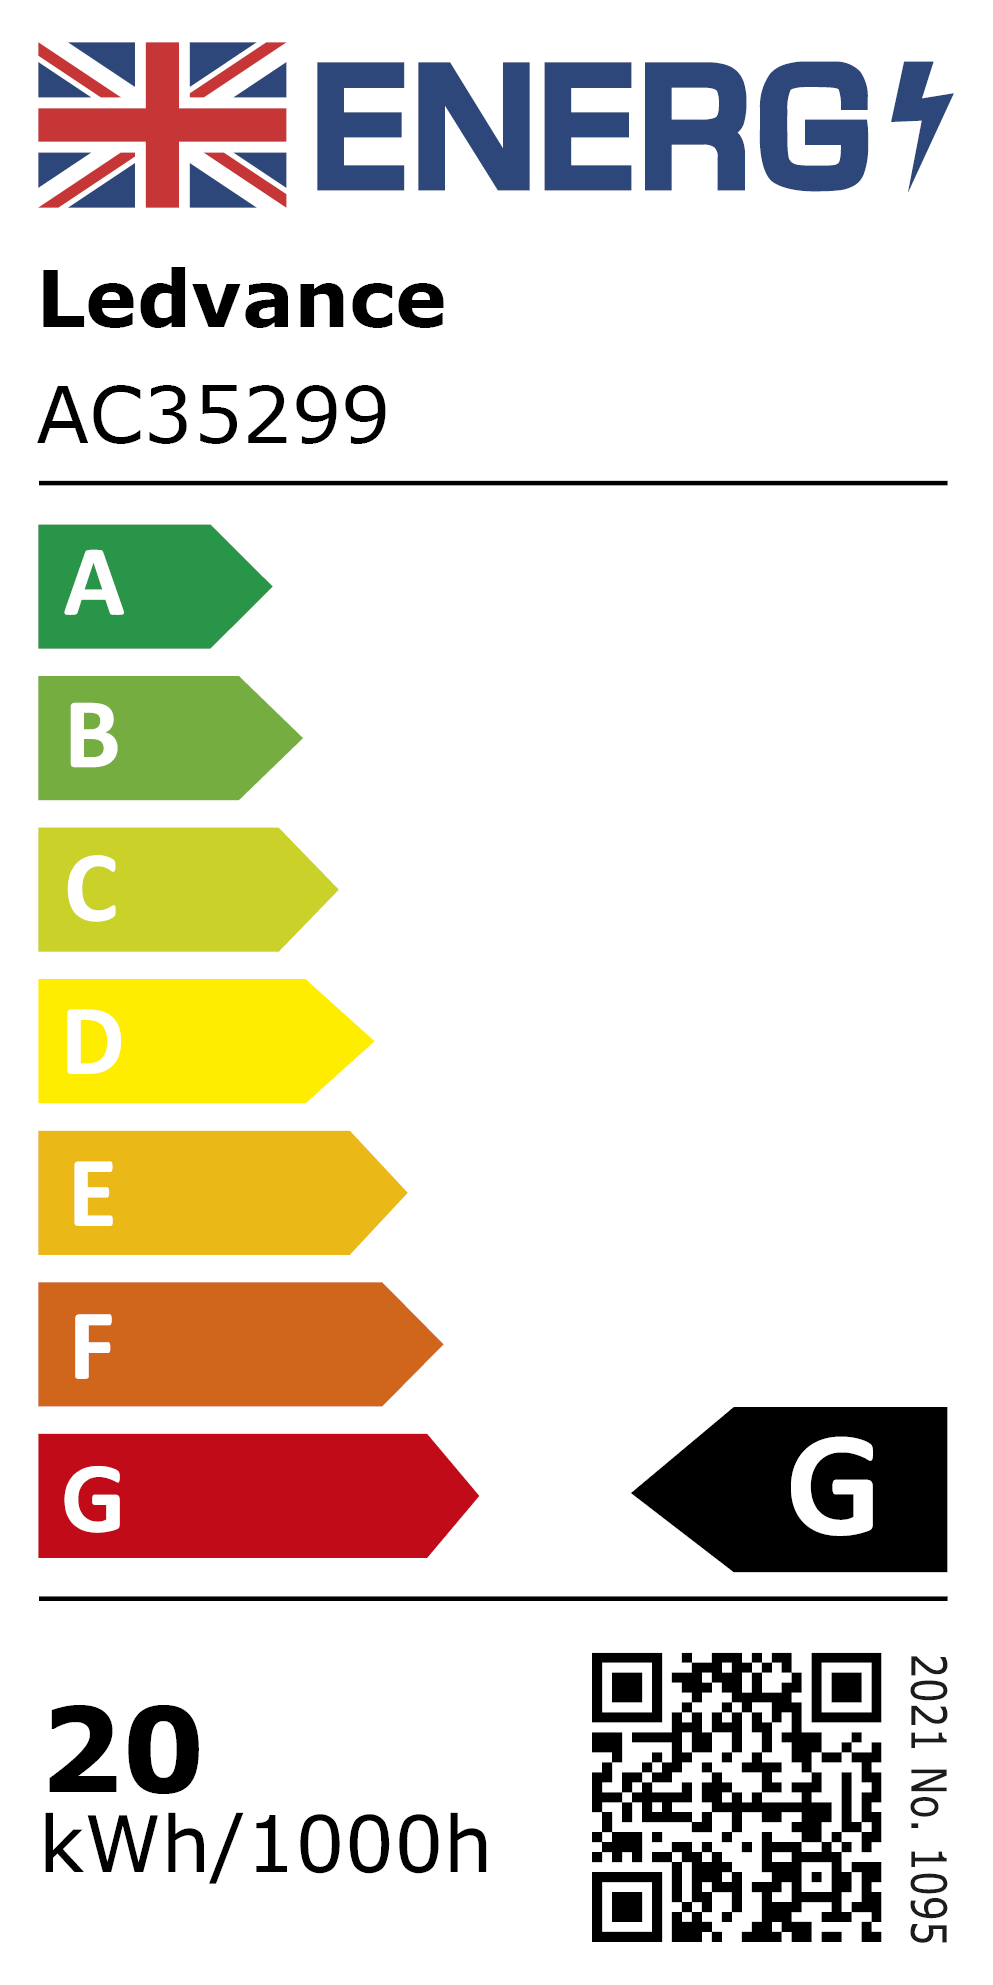 New 2021 Energy Rating Label: MPN AC35299